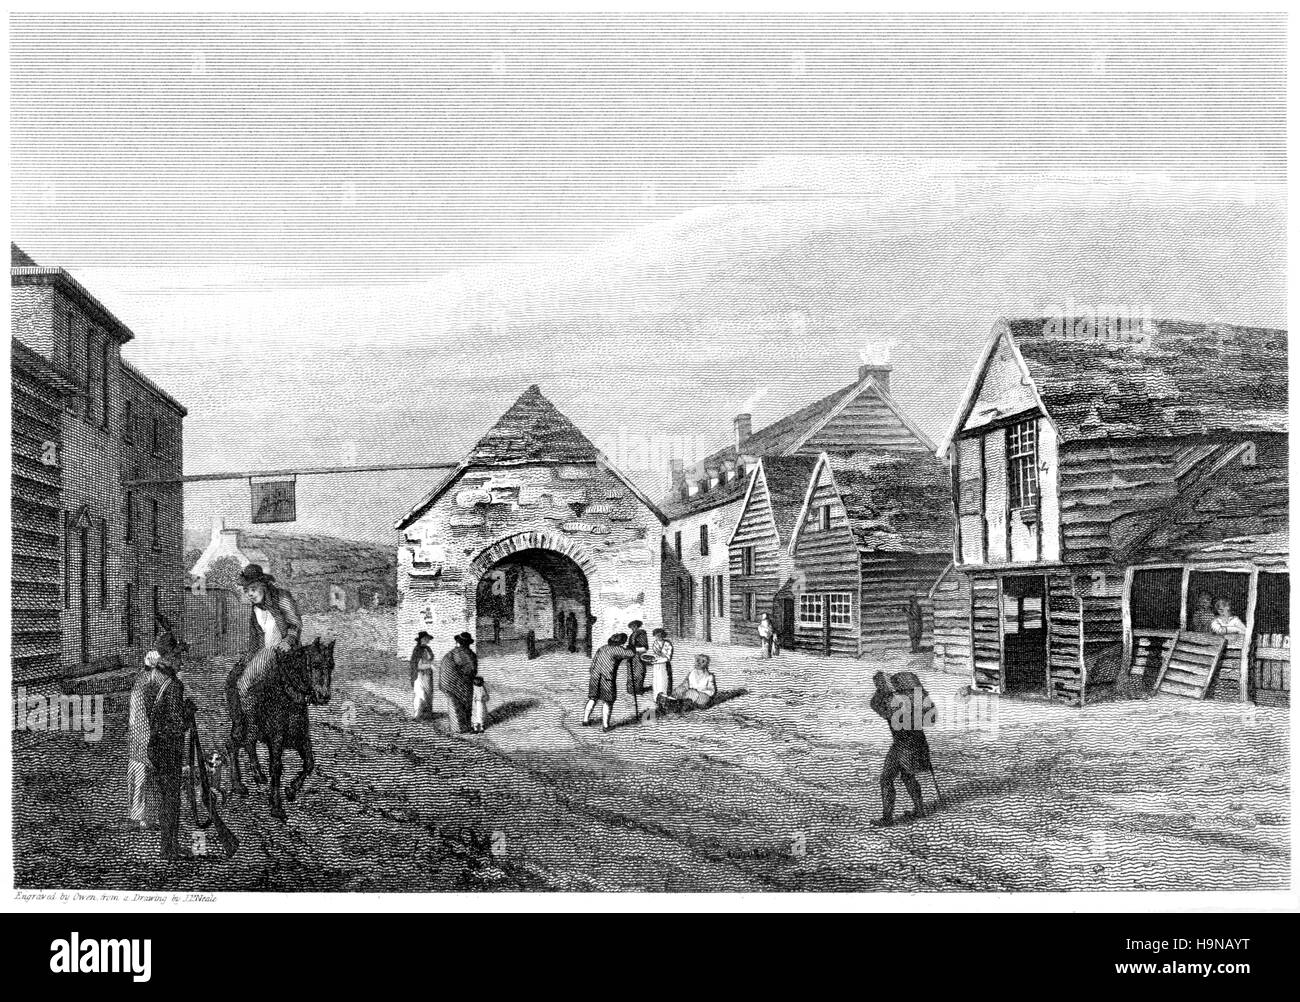 An engraving of Rhayader, Radnorshire scanned at high resolution from a book printed in 1812. Believed copyright - Stock Image